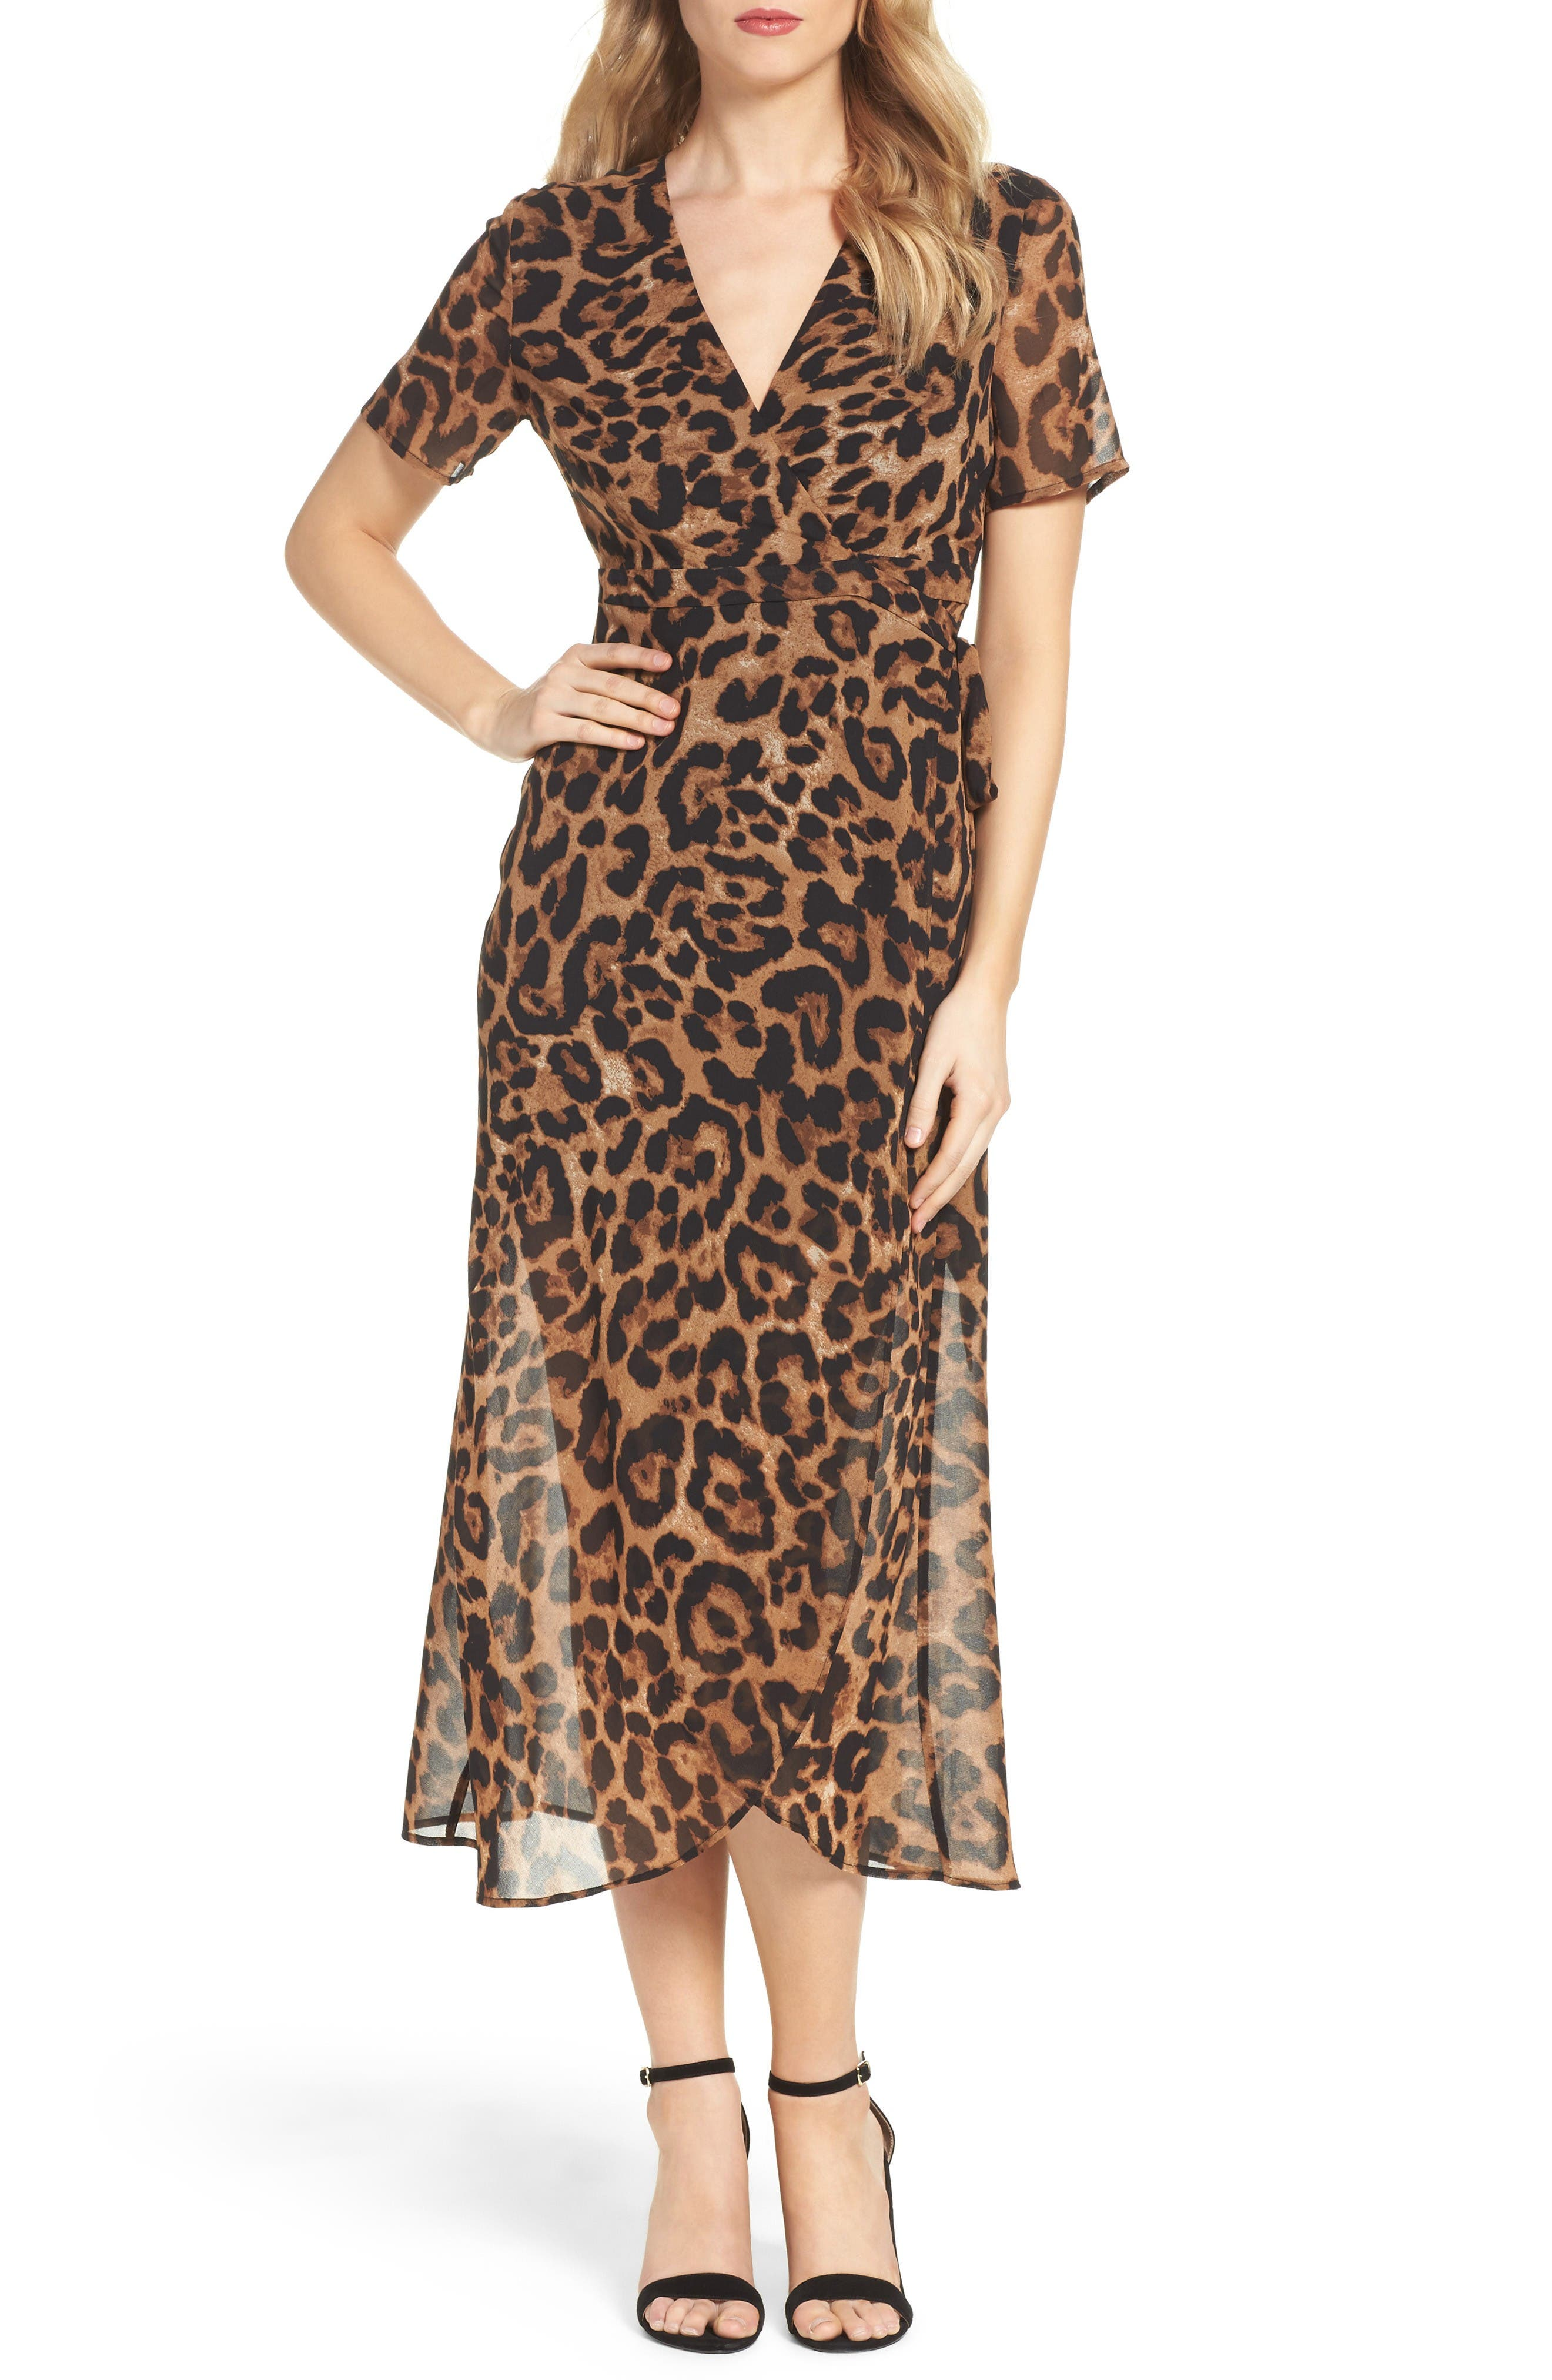 Alternate Image 1 Selected - Bardot Leopard Print Wrap Dress